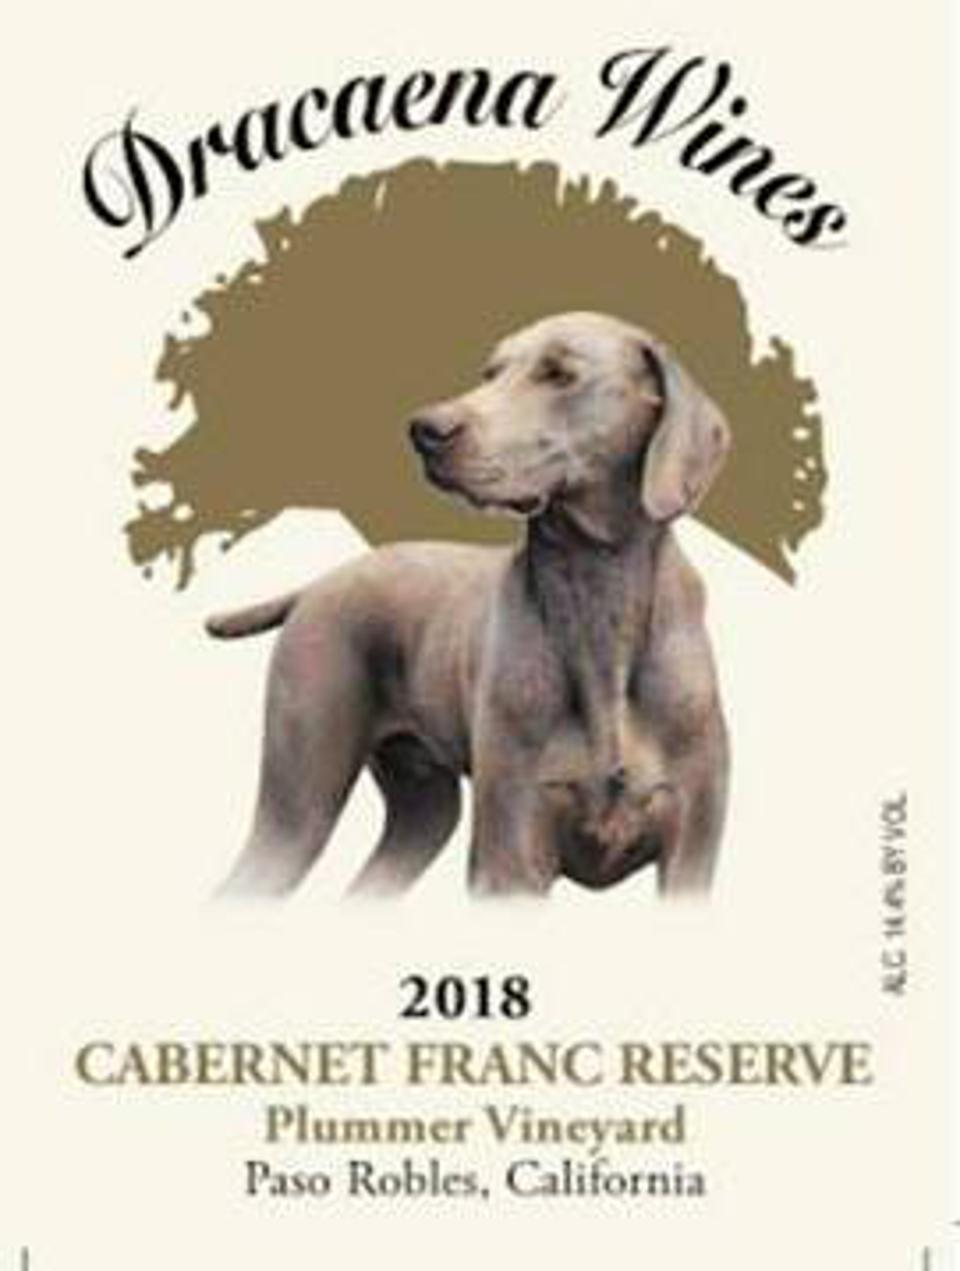 The label of Draceana Wines honors the winemaker's late dog.